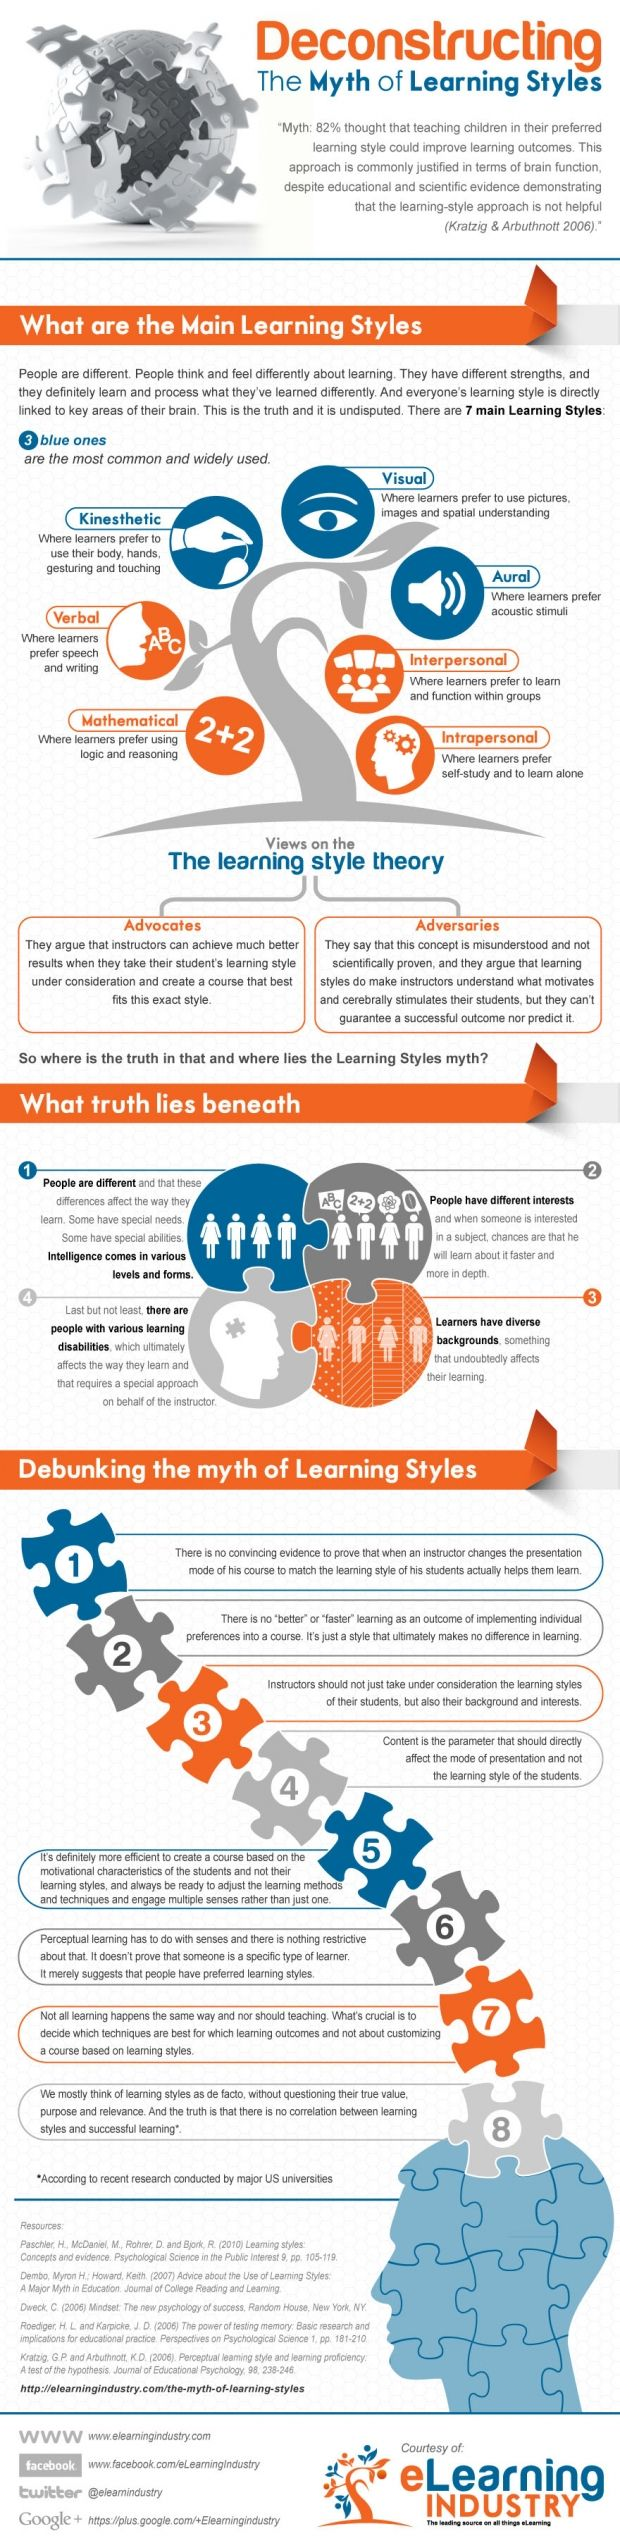 learning styles should be tailored fit for each student Each observation will bring you closer to understanding their special gifts and will reveal to you more effective ways to teach them using their preferred learning styles no student is exclusively one style or another and most utilize a variety of modalities when learning.